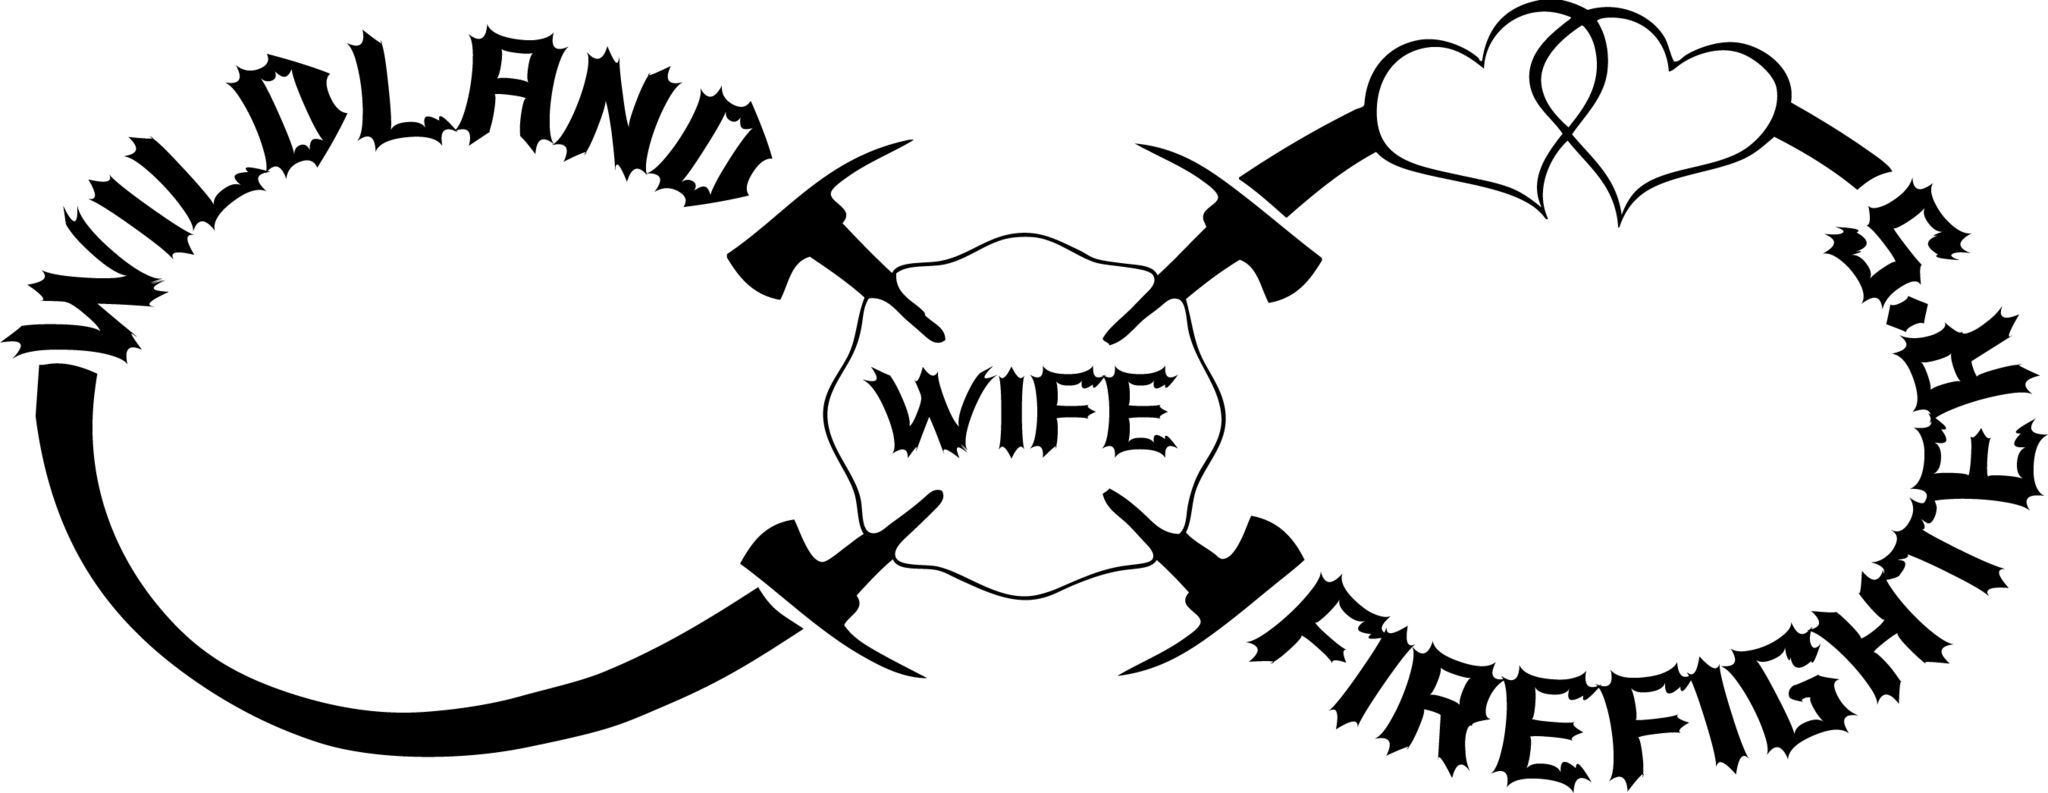 Wildland Firefighter S Wife Infinity With Hearts Decal